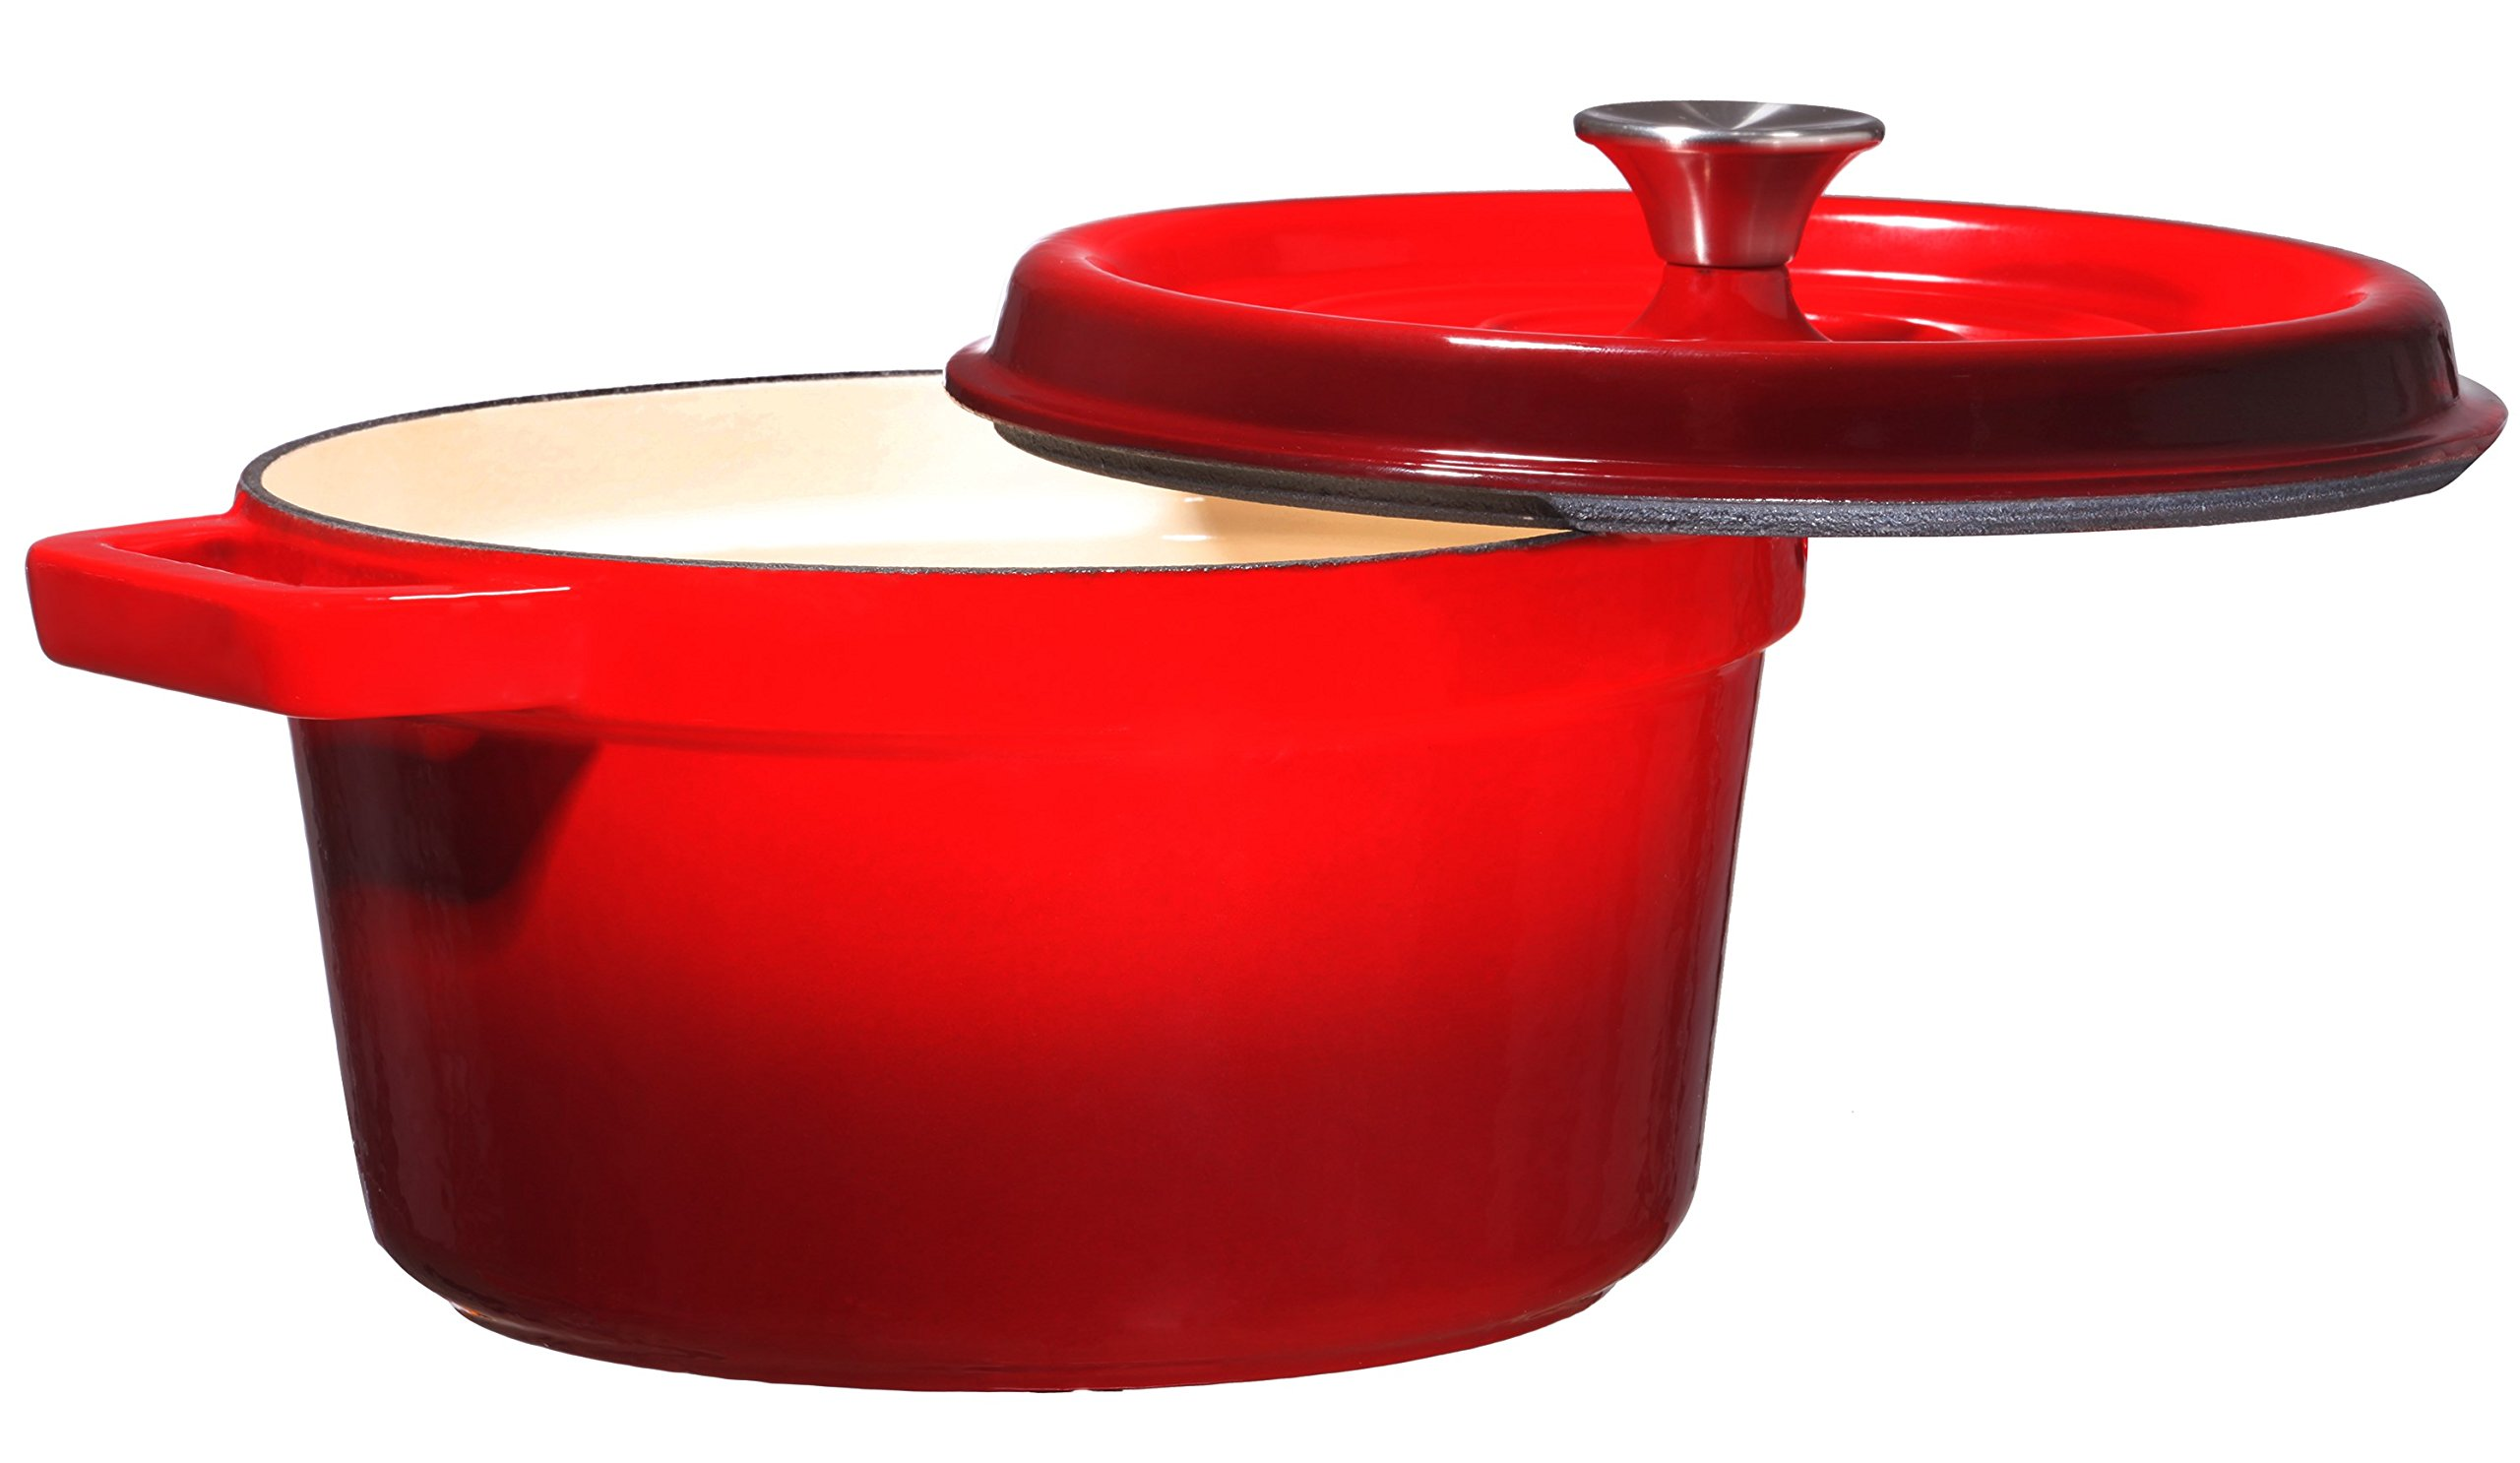 Bruntmor, Enameled Cast Iron Dutch Oven Casserole Dish 6.5 quart Large Loop Handles & Self-Basting Condensation Ridges On Lid (Fire Red)